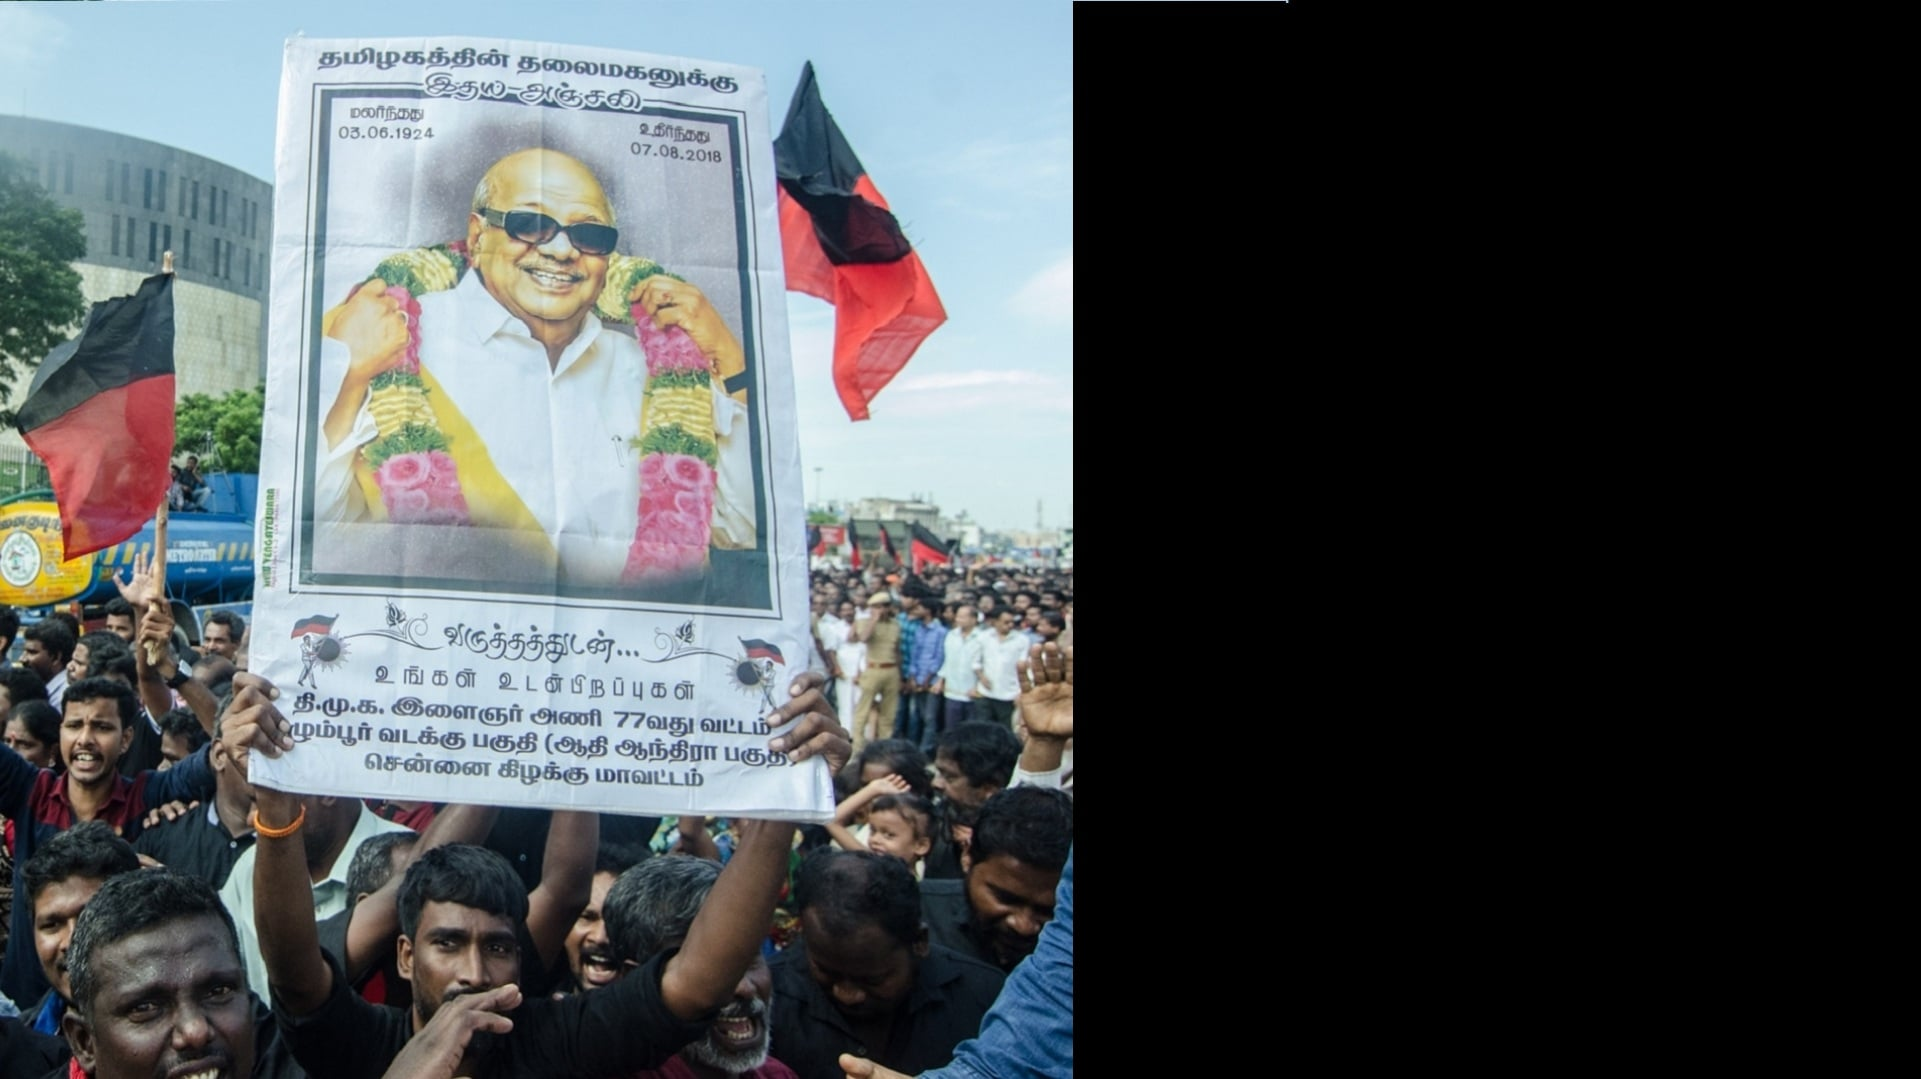 As DMK chief Karunanidhi's life slipped away, his supporters held on to hope and a prayer